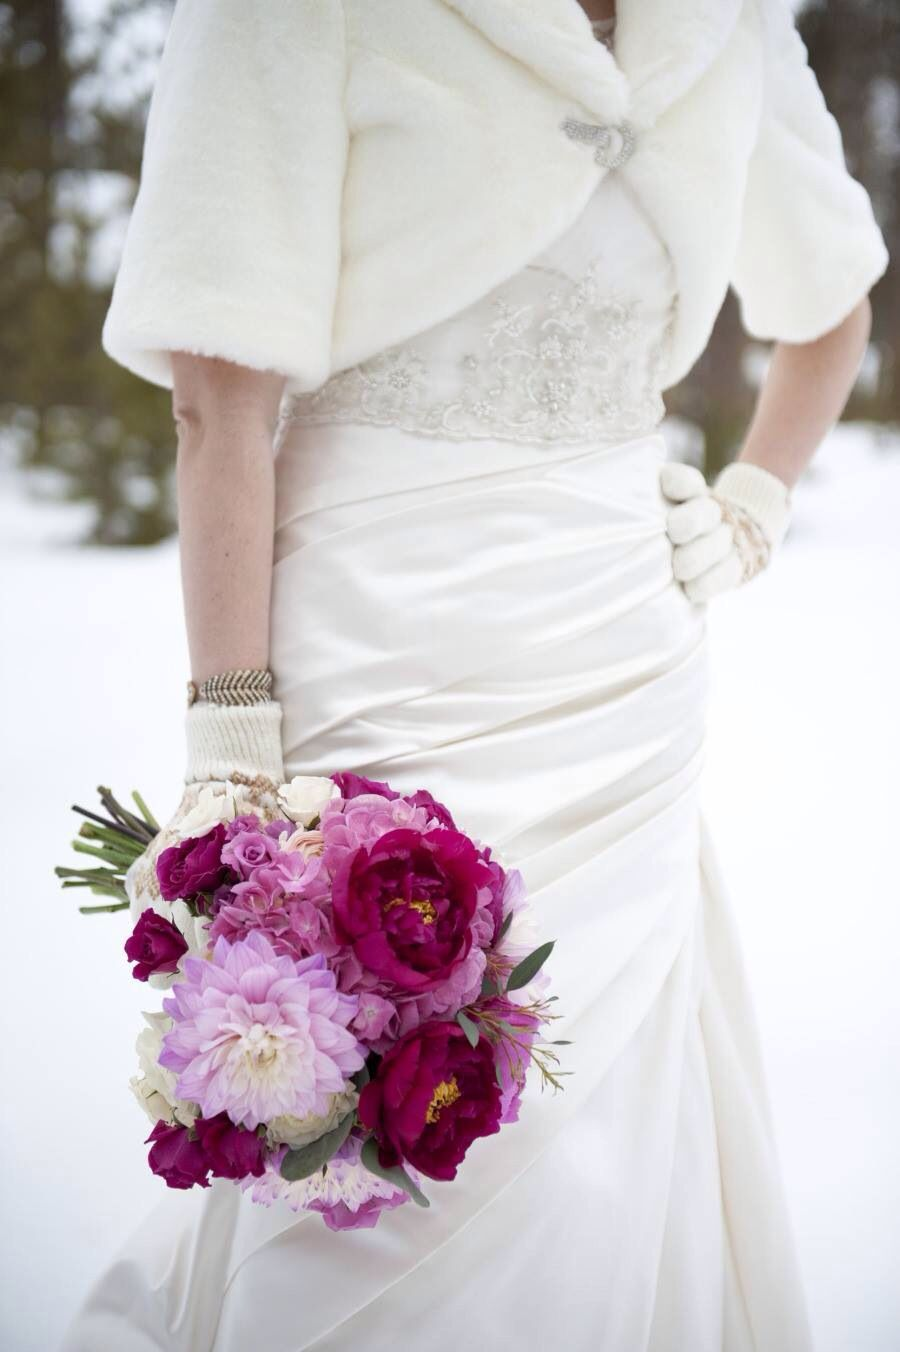 Wedding bouquets not flowers  Pin by Greenacre Flowers on Bouquets  Pinterest